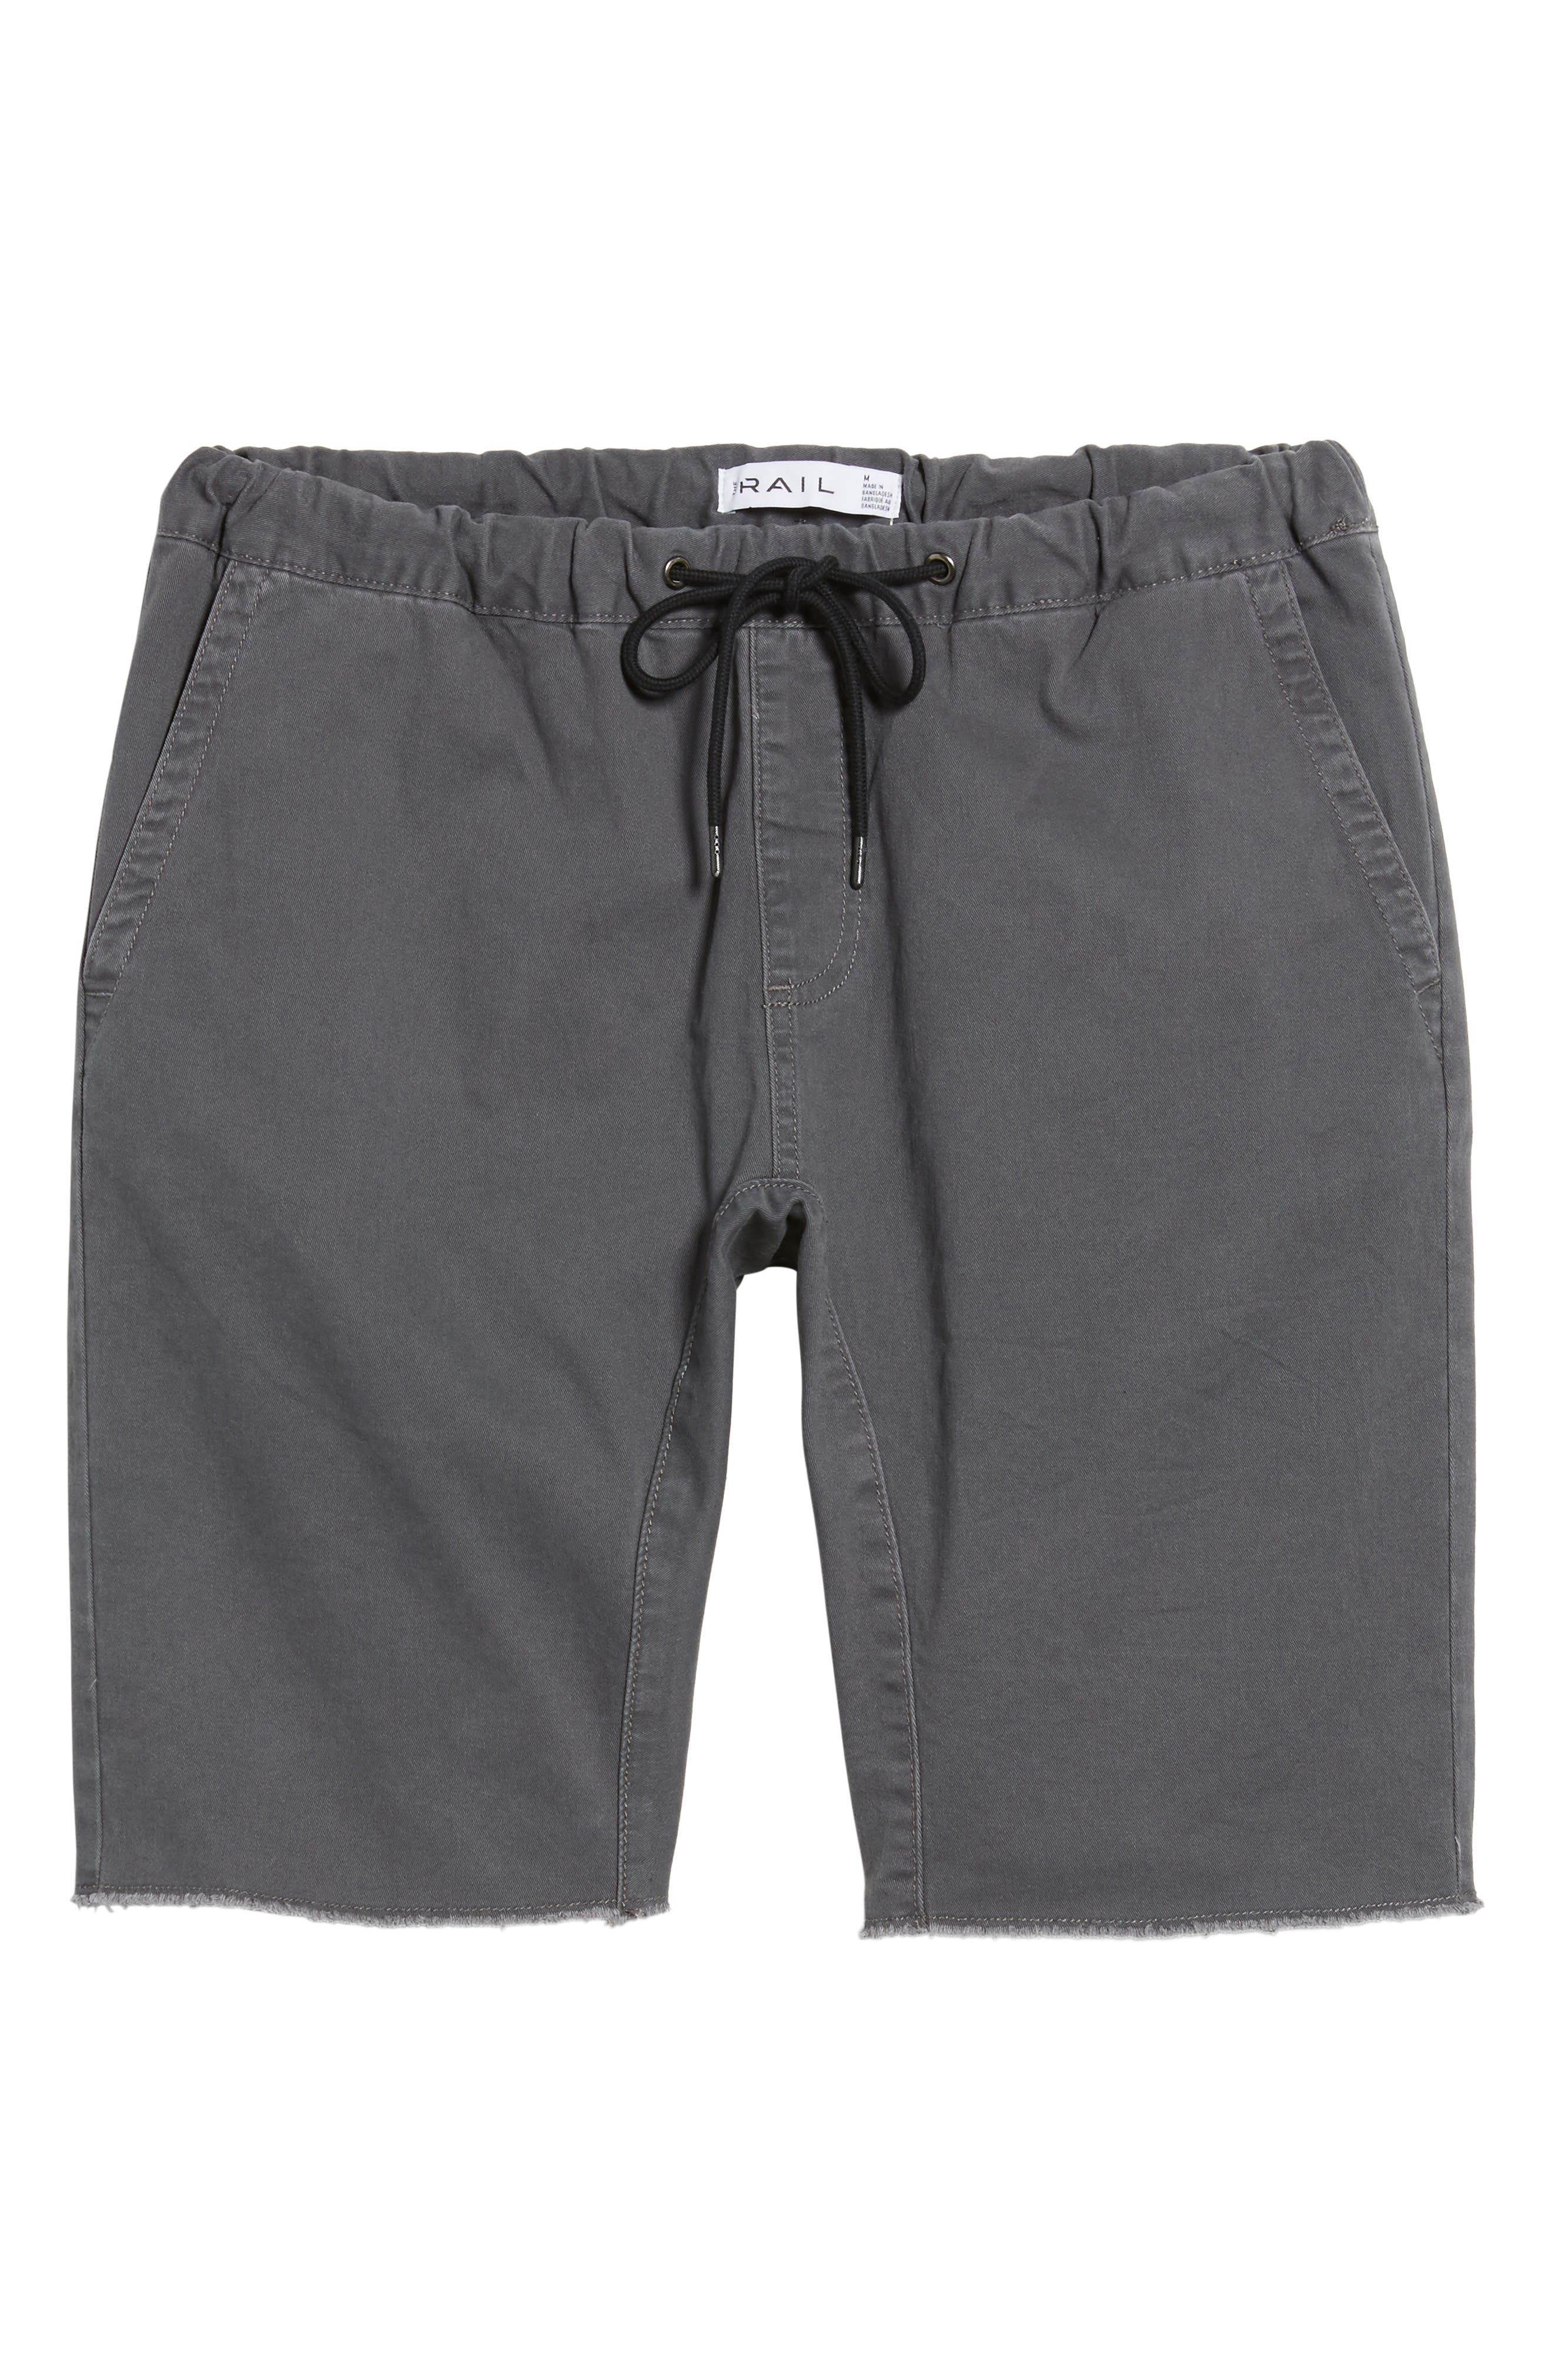 Jogger Shorts,                             Alternate thumbnail 6, color,                             022